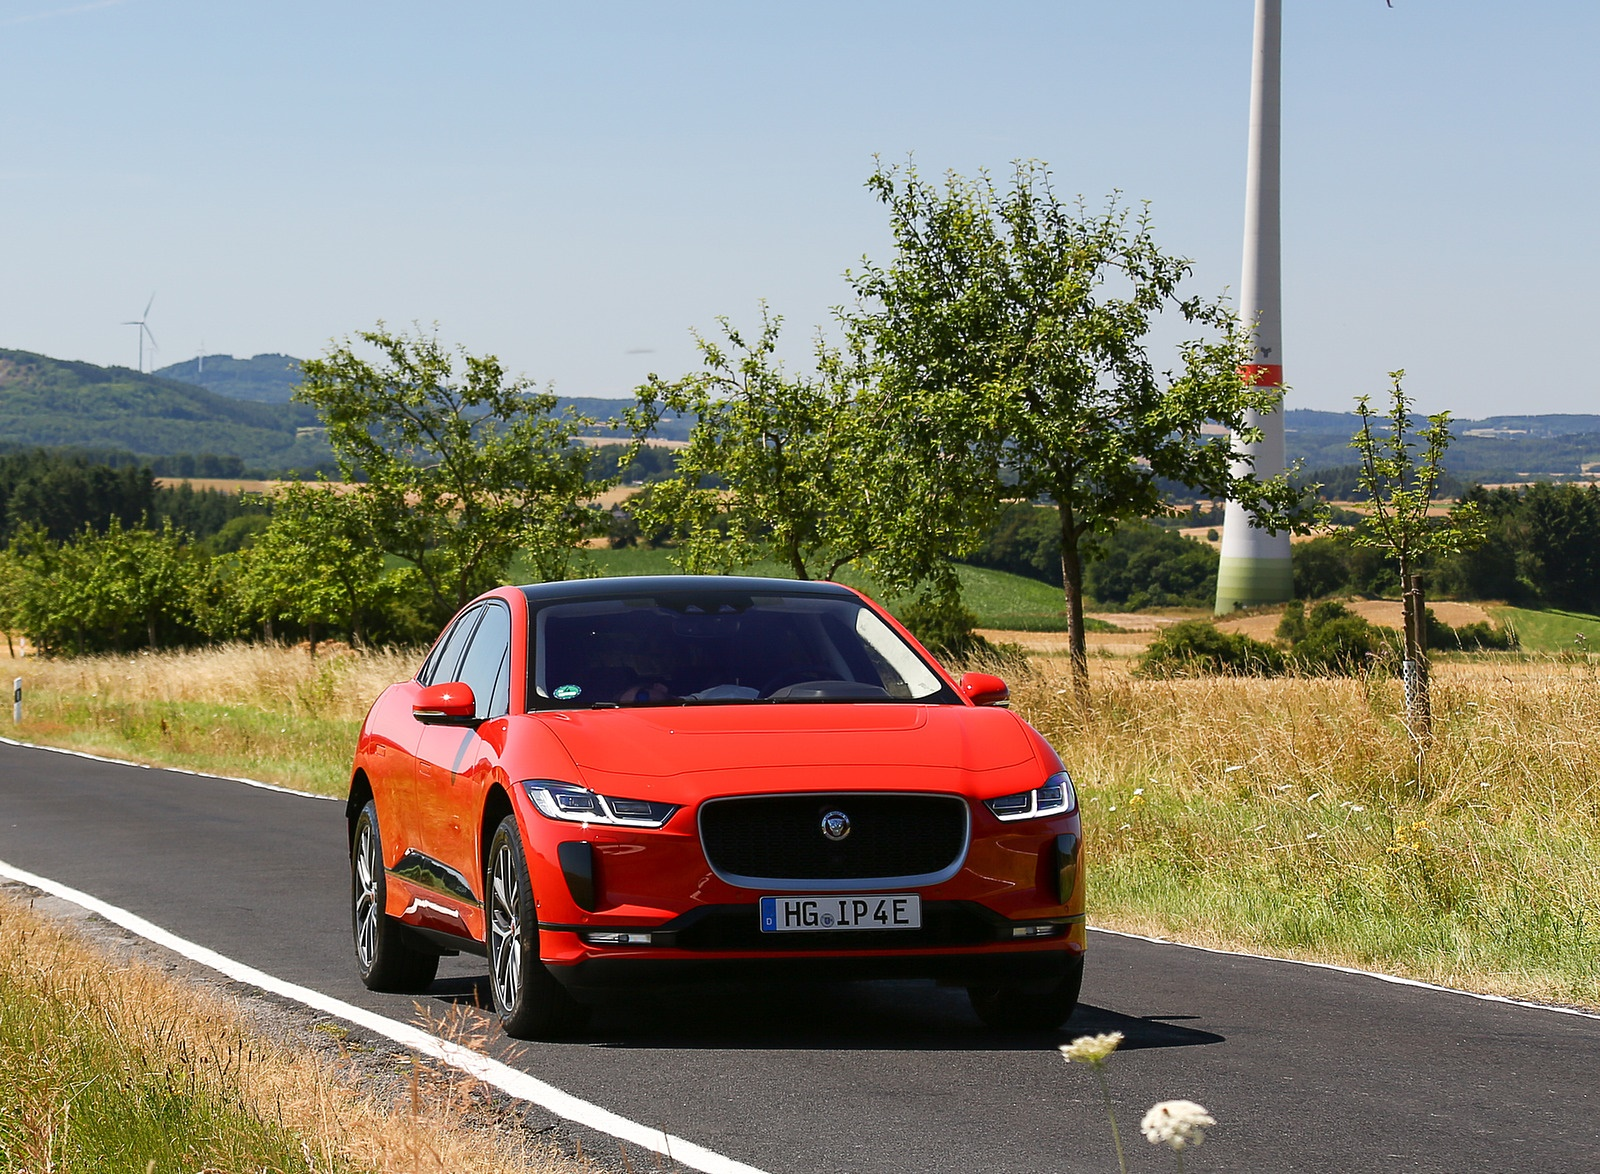 2019 Jaguar I-PACE EV400 AWD HSE First Edition (Color: Photon Red) Front Wallpapers #39 of 192